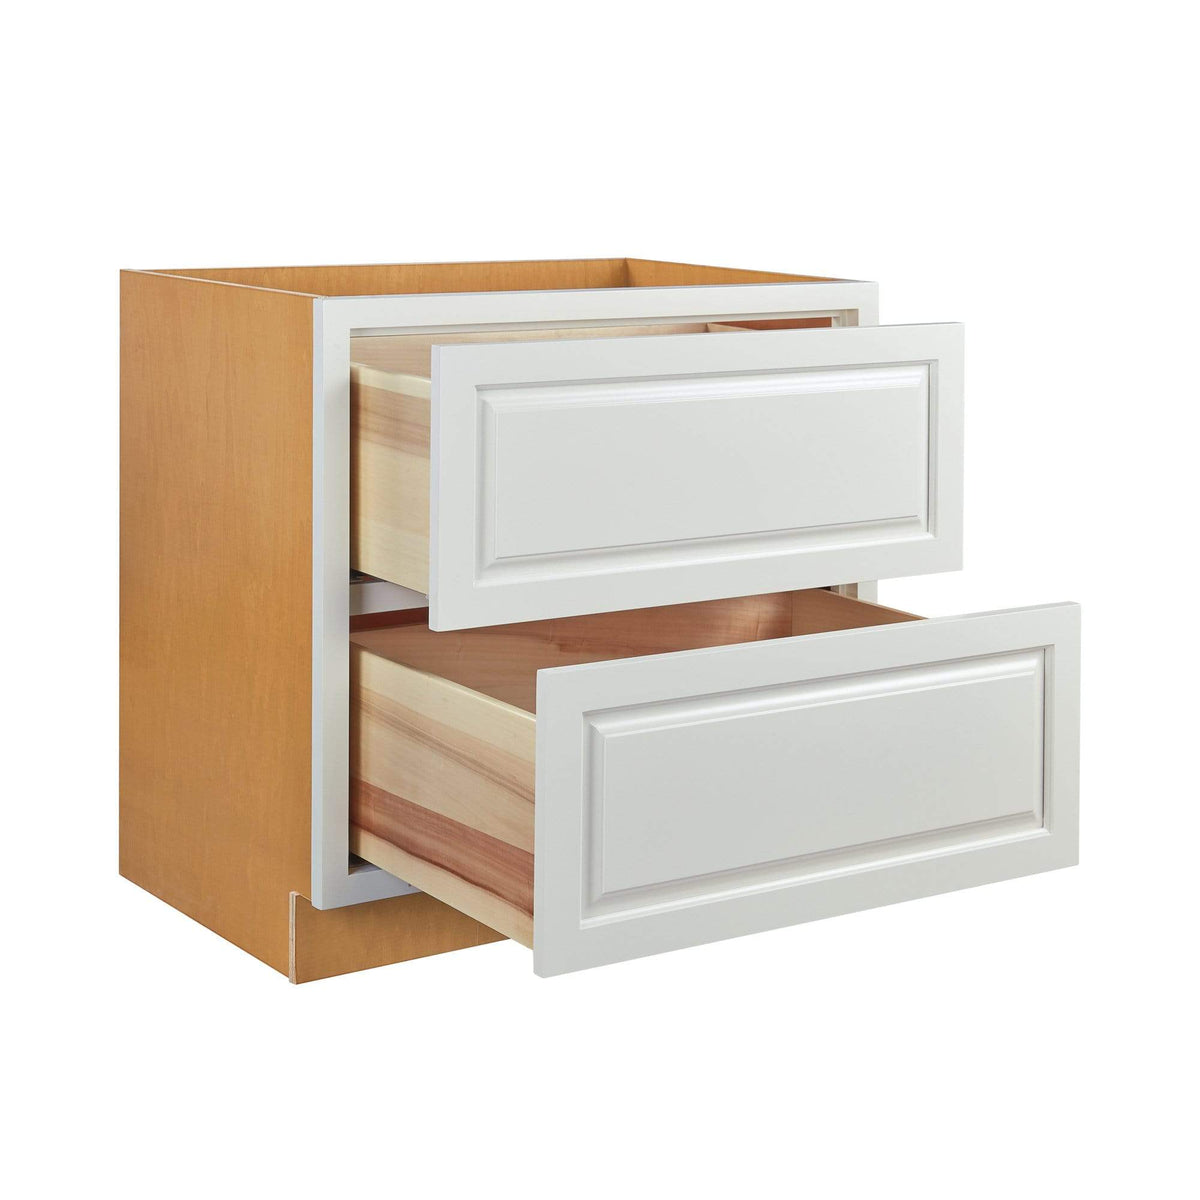 "Drawer Base Cabinet Vintage White Raised Panel Inset Drawer Base Cabinet - Two Drawers - 36"" D5DB36-2P Inset Kitchen Cabinets"